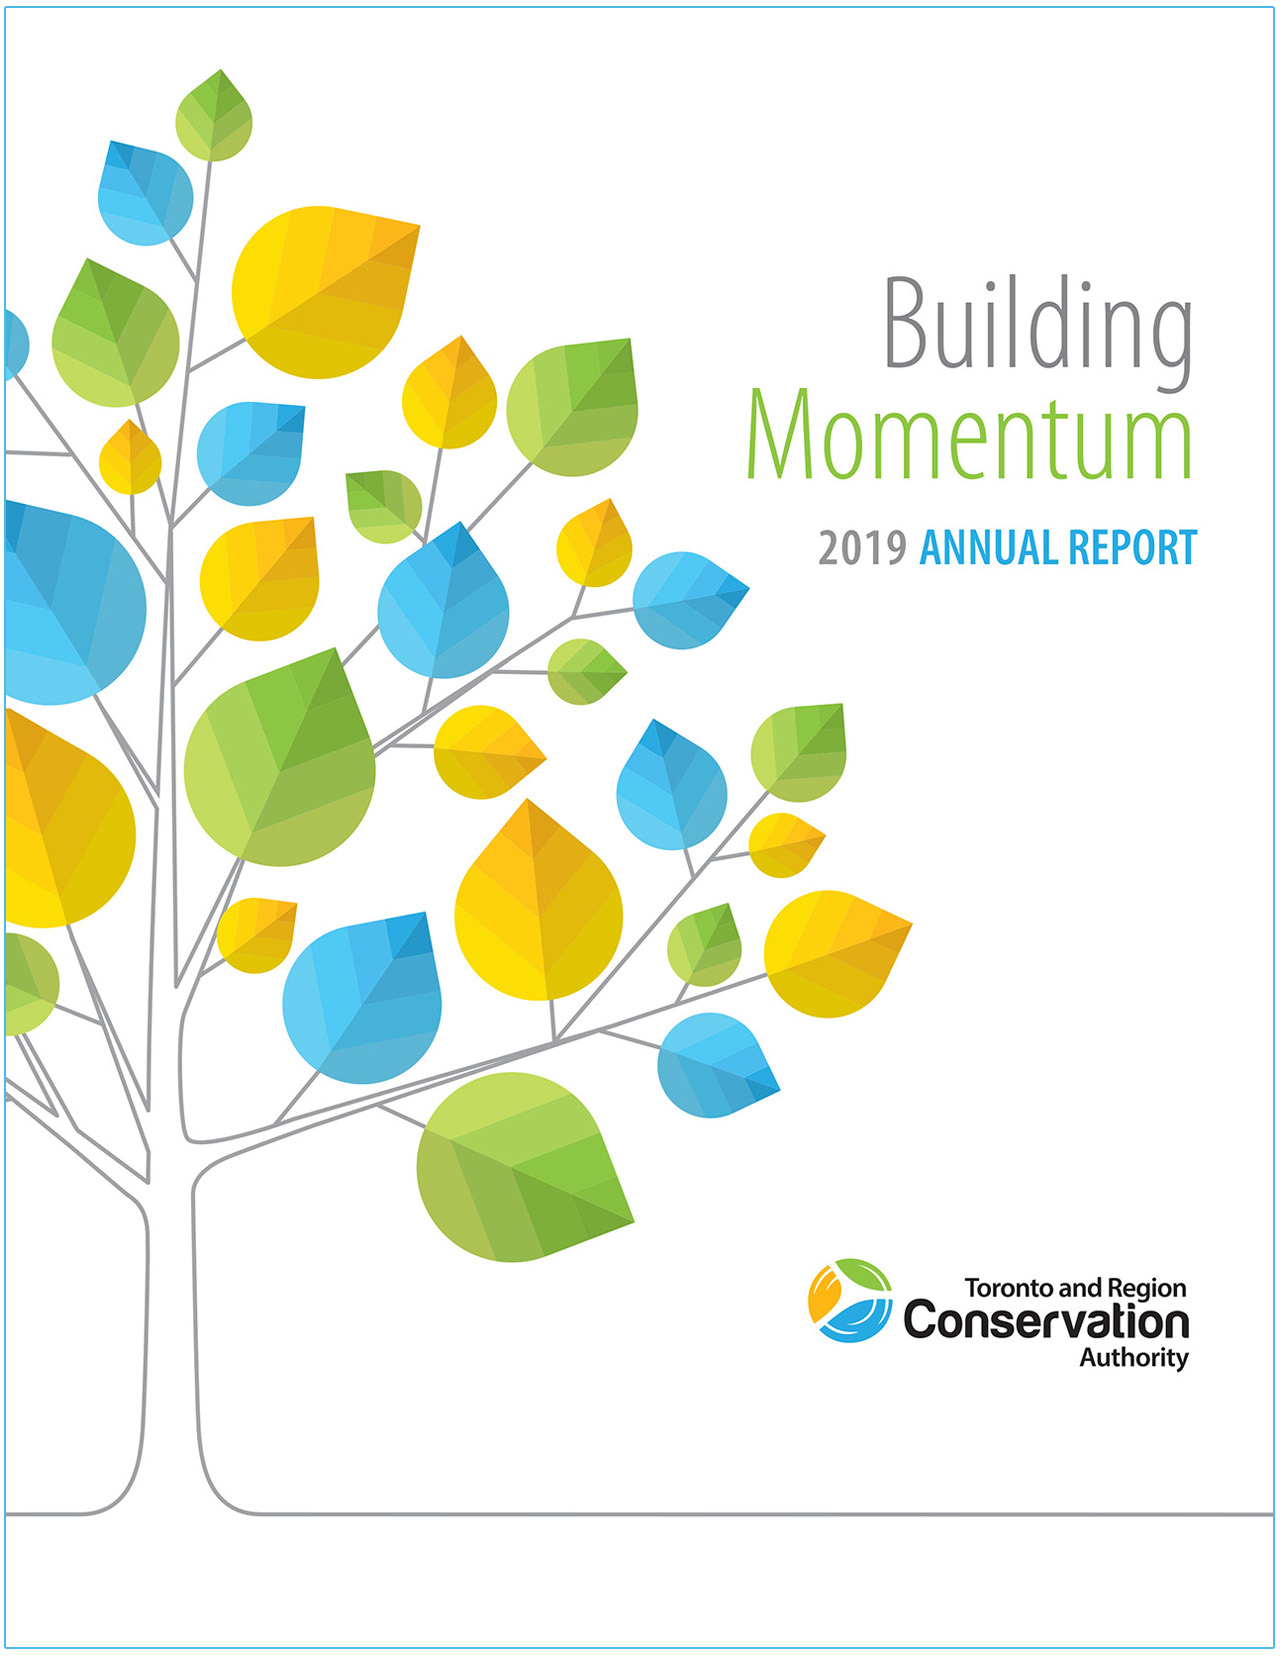 cover page of TRCA 2019 annual report